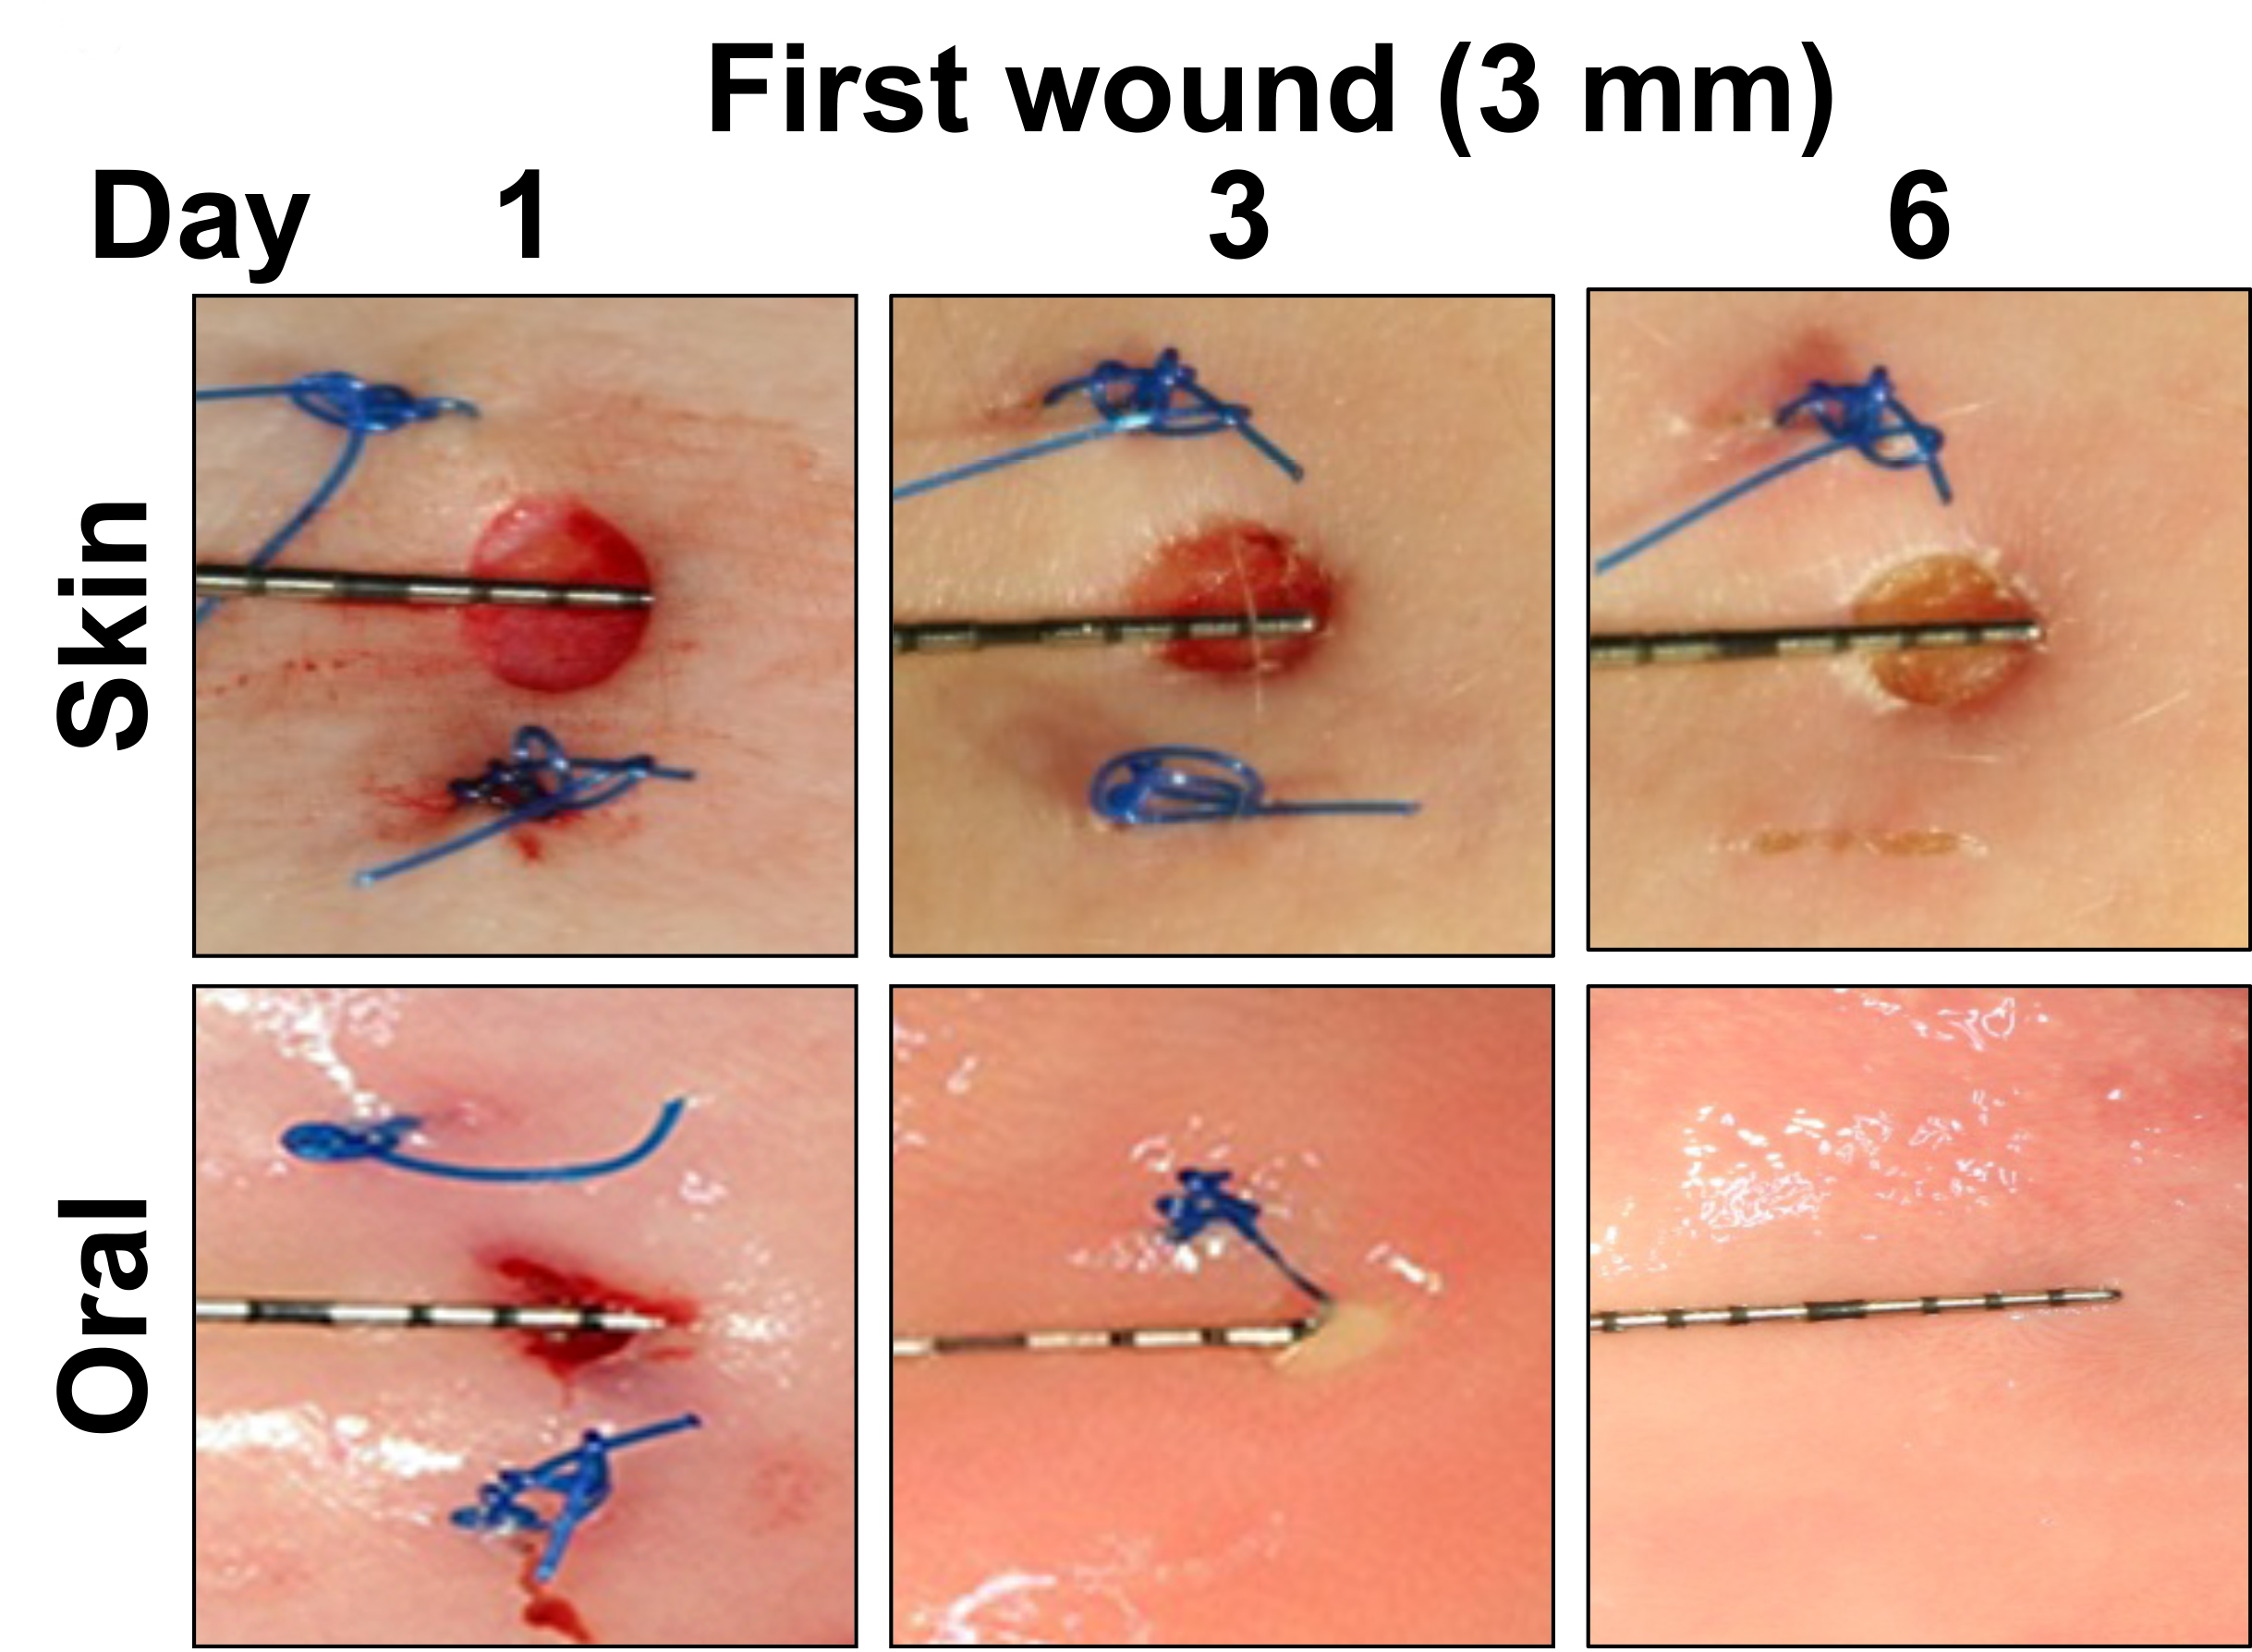 Over six days, researchers saw mouth wounds heal much faster than skin cuts. (Credit: R. Inglesias-Bartolome et al., Science Translational Medicine (2018))